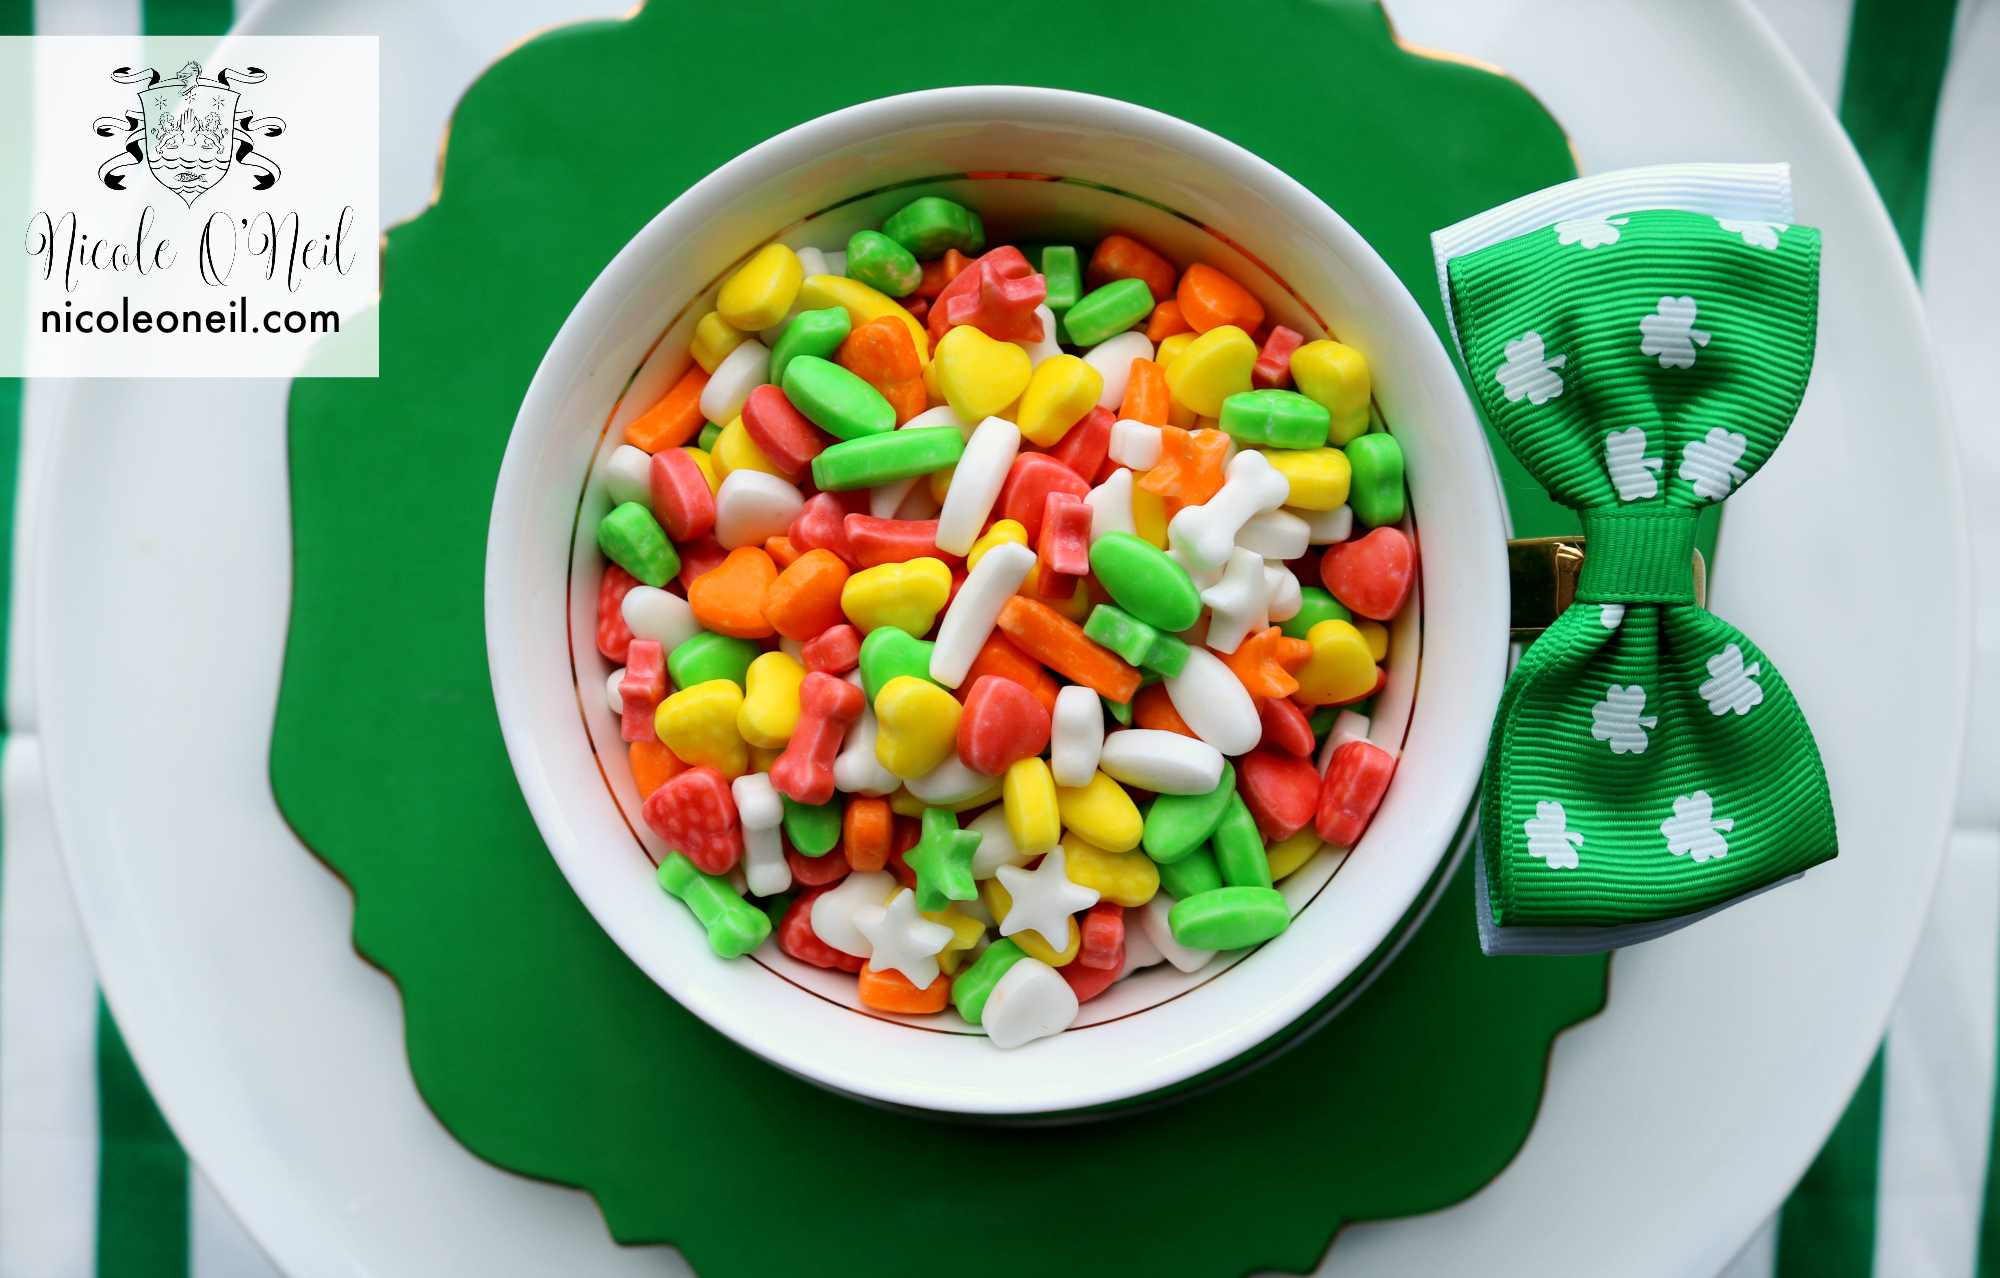 Ideas for Decorating Your St Patrick's Day Table